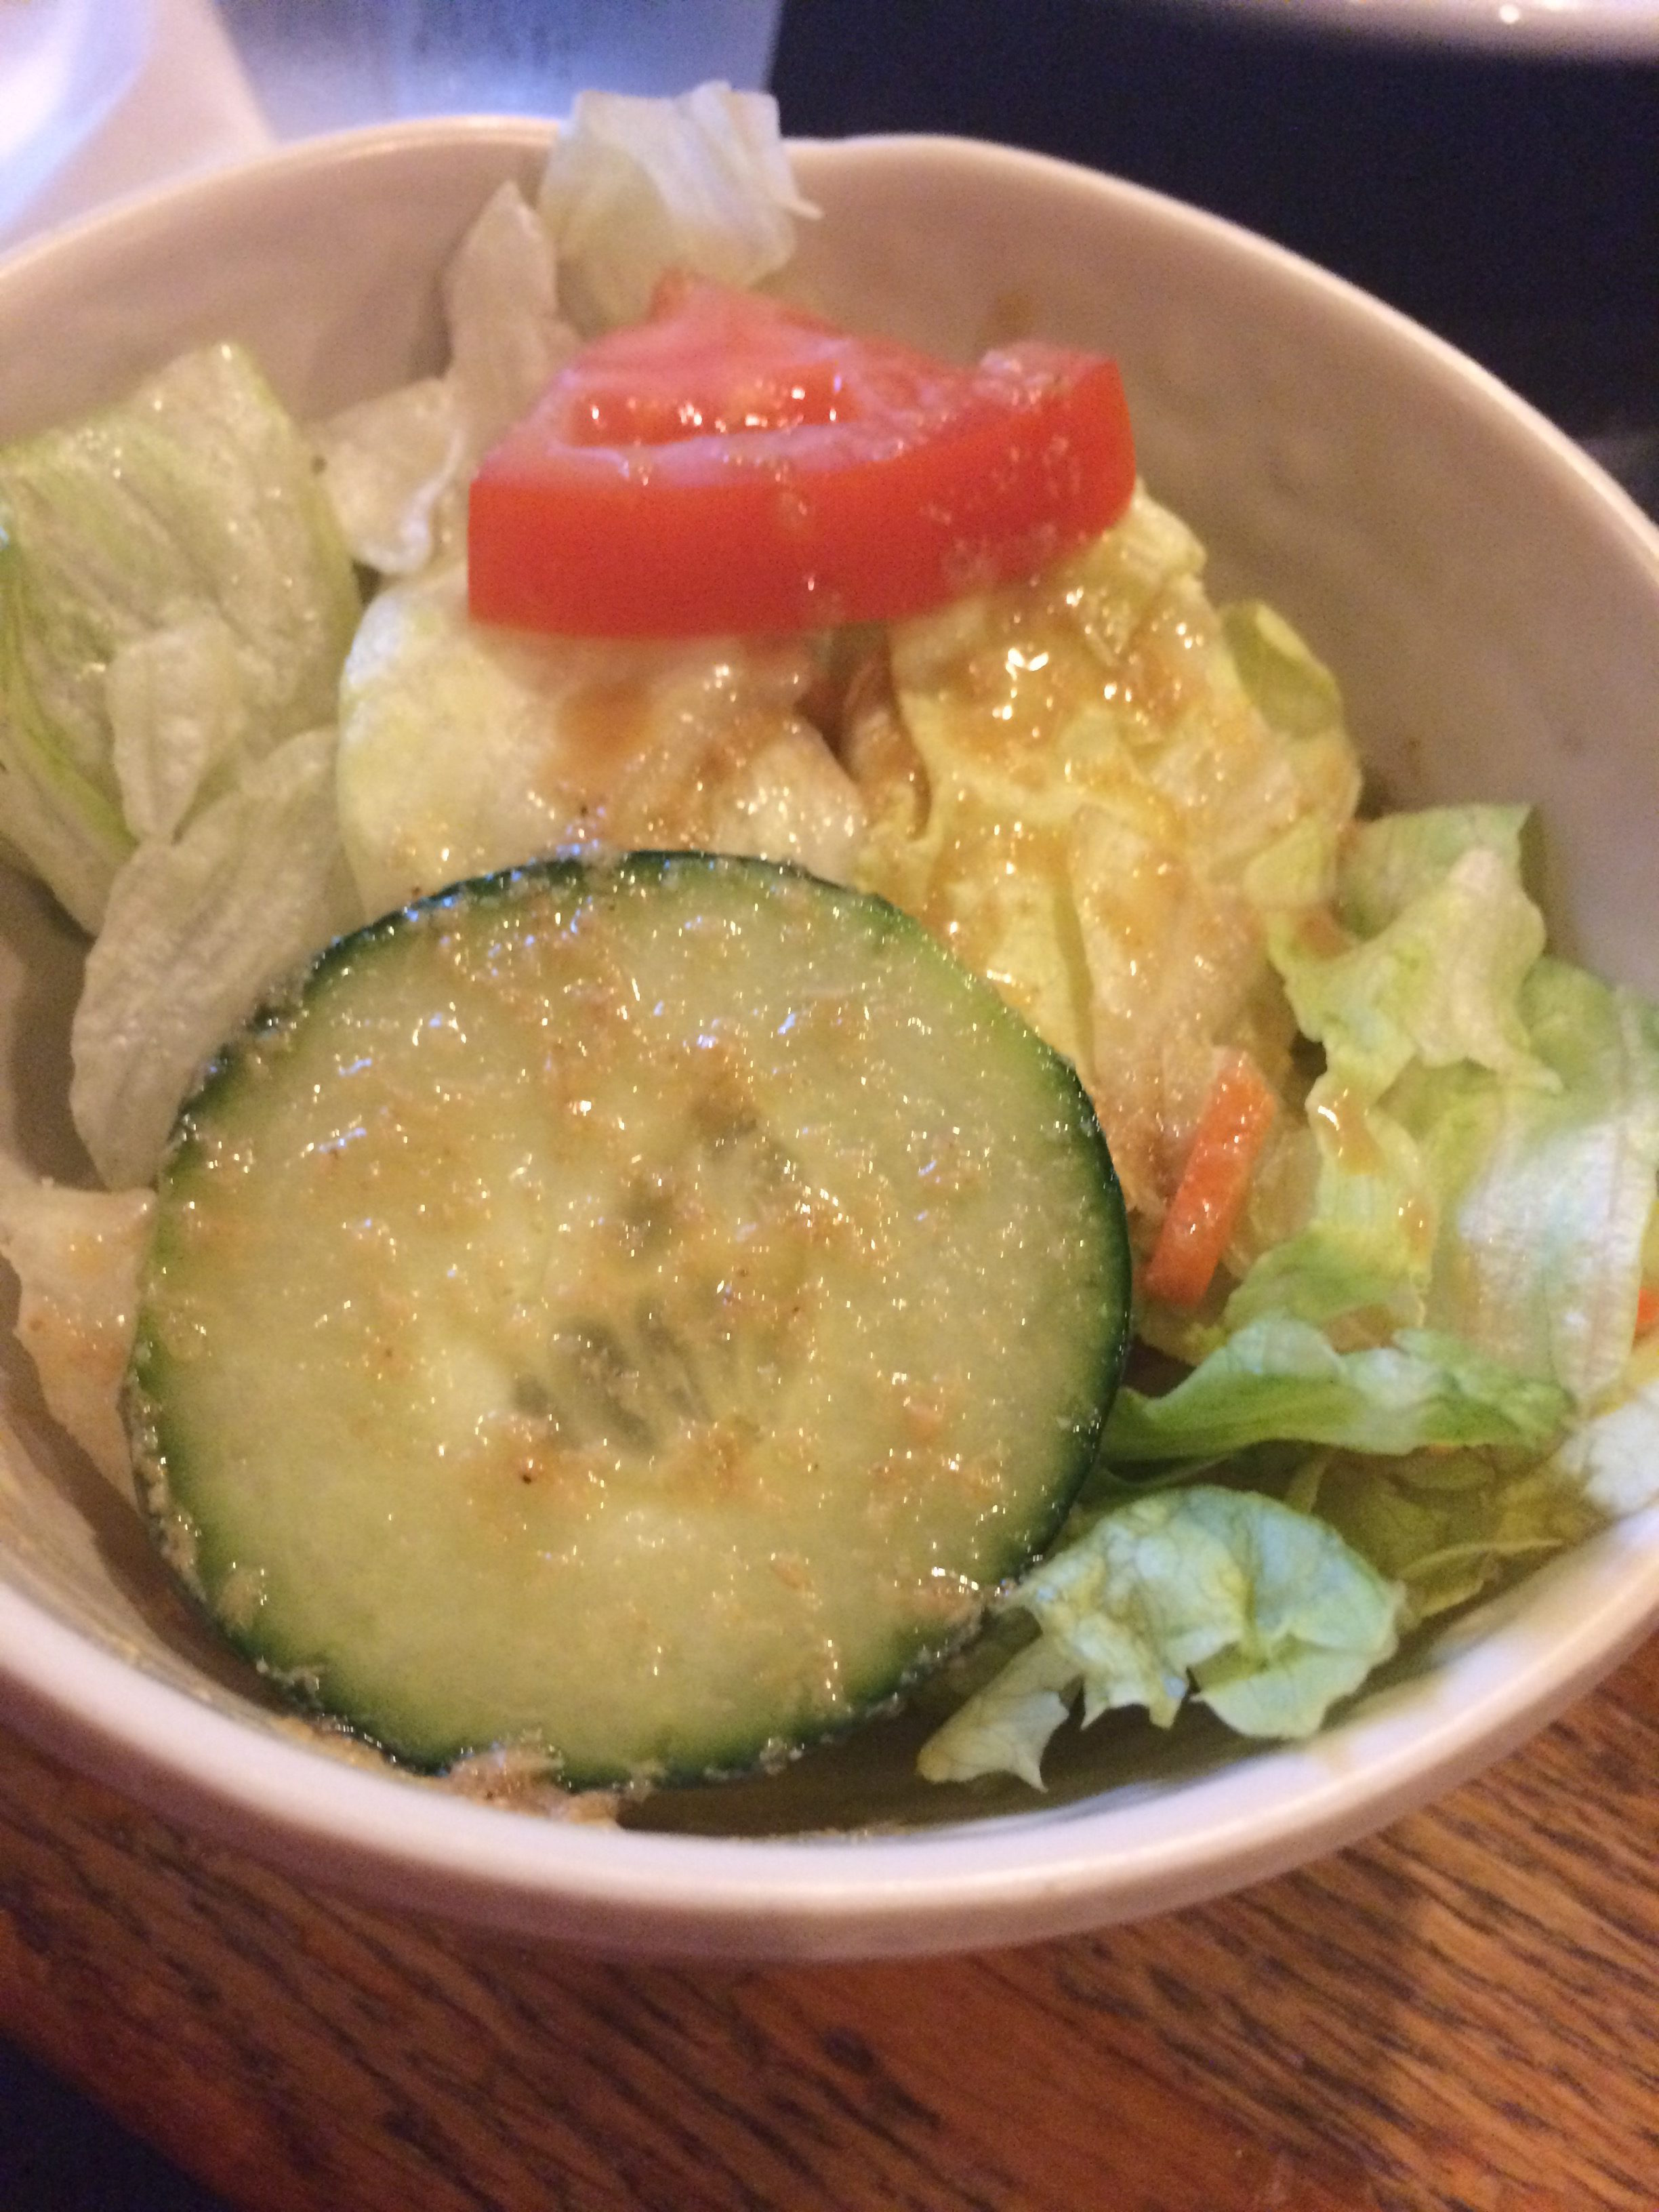 The salad looks basic, but it's the dressing that makes it yummy. It's a sweet based vinaigrette.